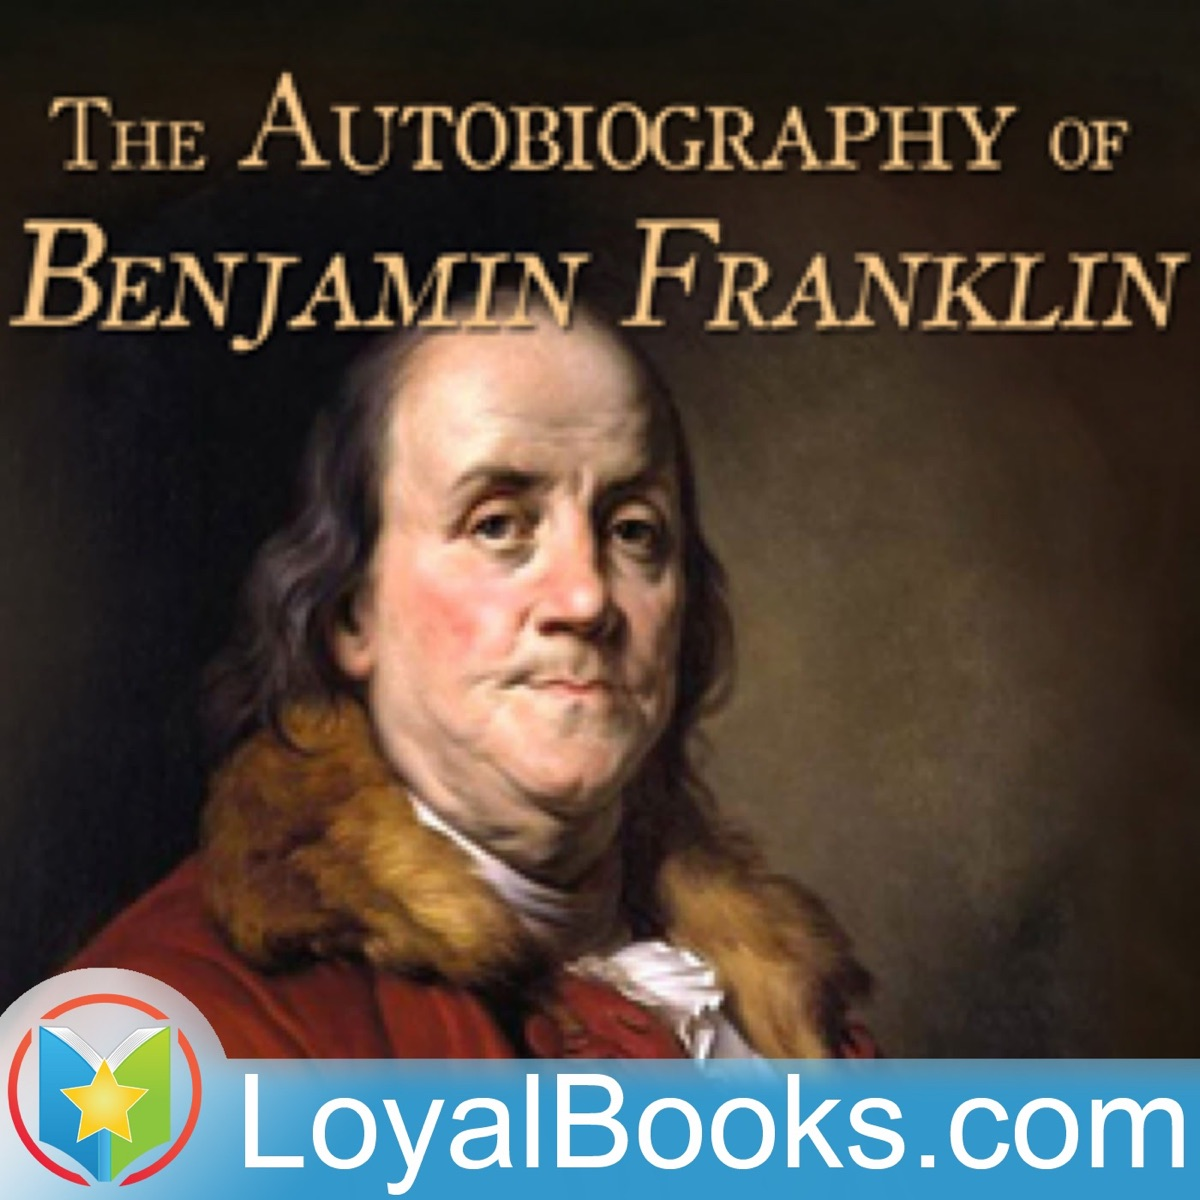 an overview of the autobiography of benjamin franklin Thus, benjamin franklin was most likely the son which mrs franklin thought to be an arminian, and it was his brother who denied the existence of the trinity aside from this, however, the thing to note about this letter is that franklin responded to his mother's concerns by quoting scripture.